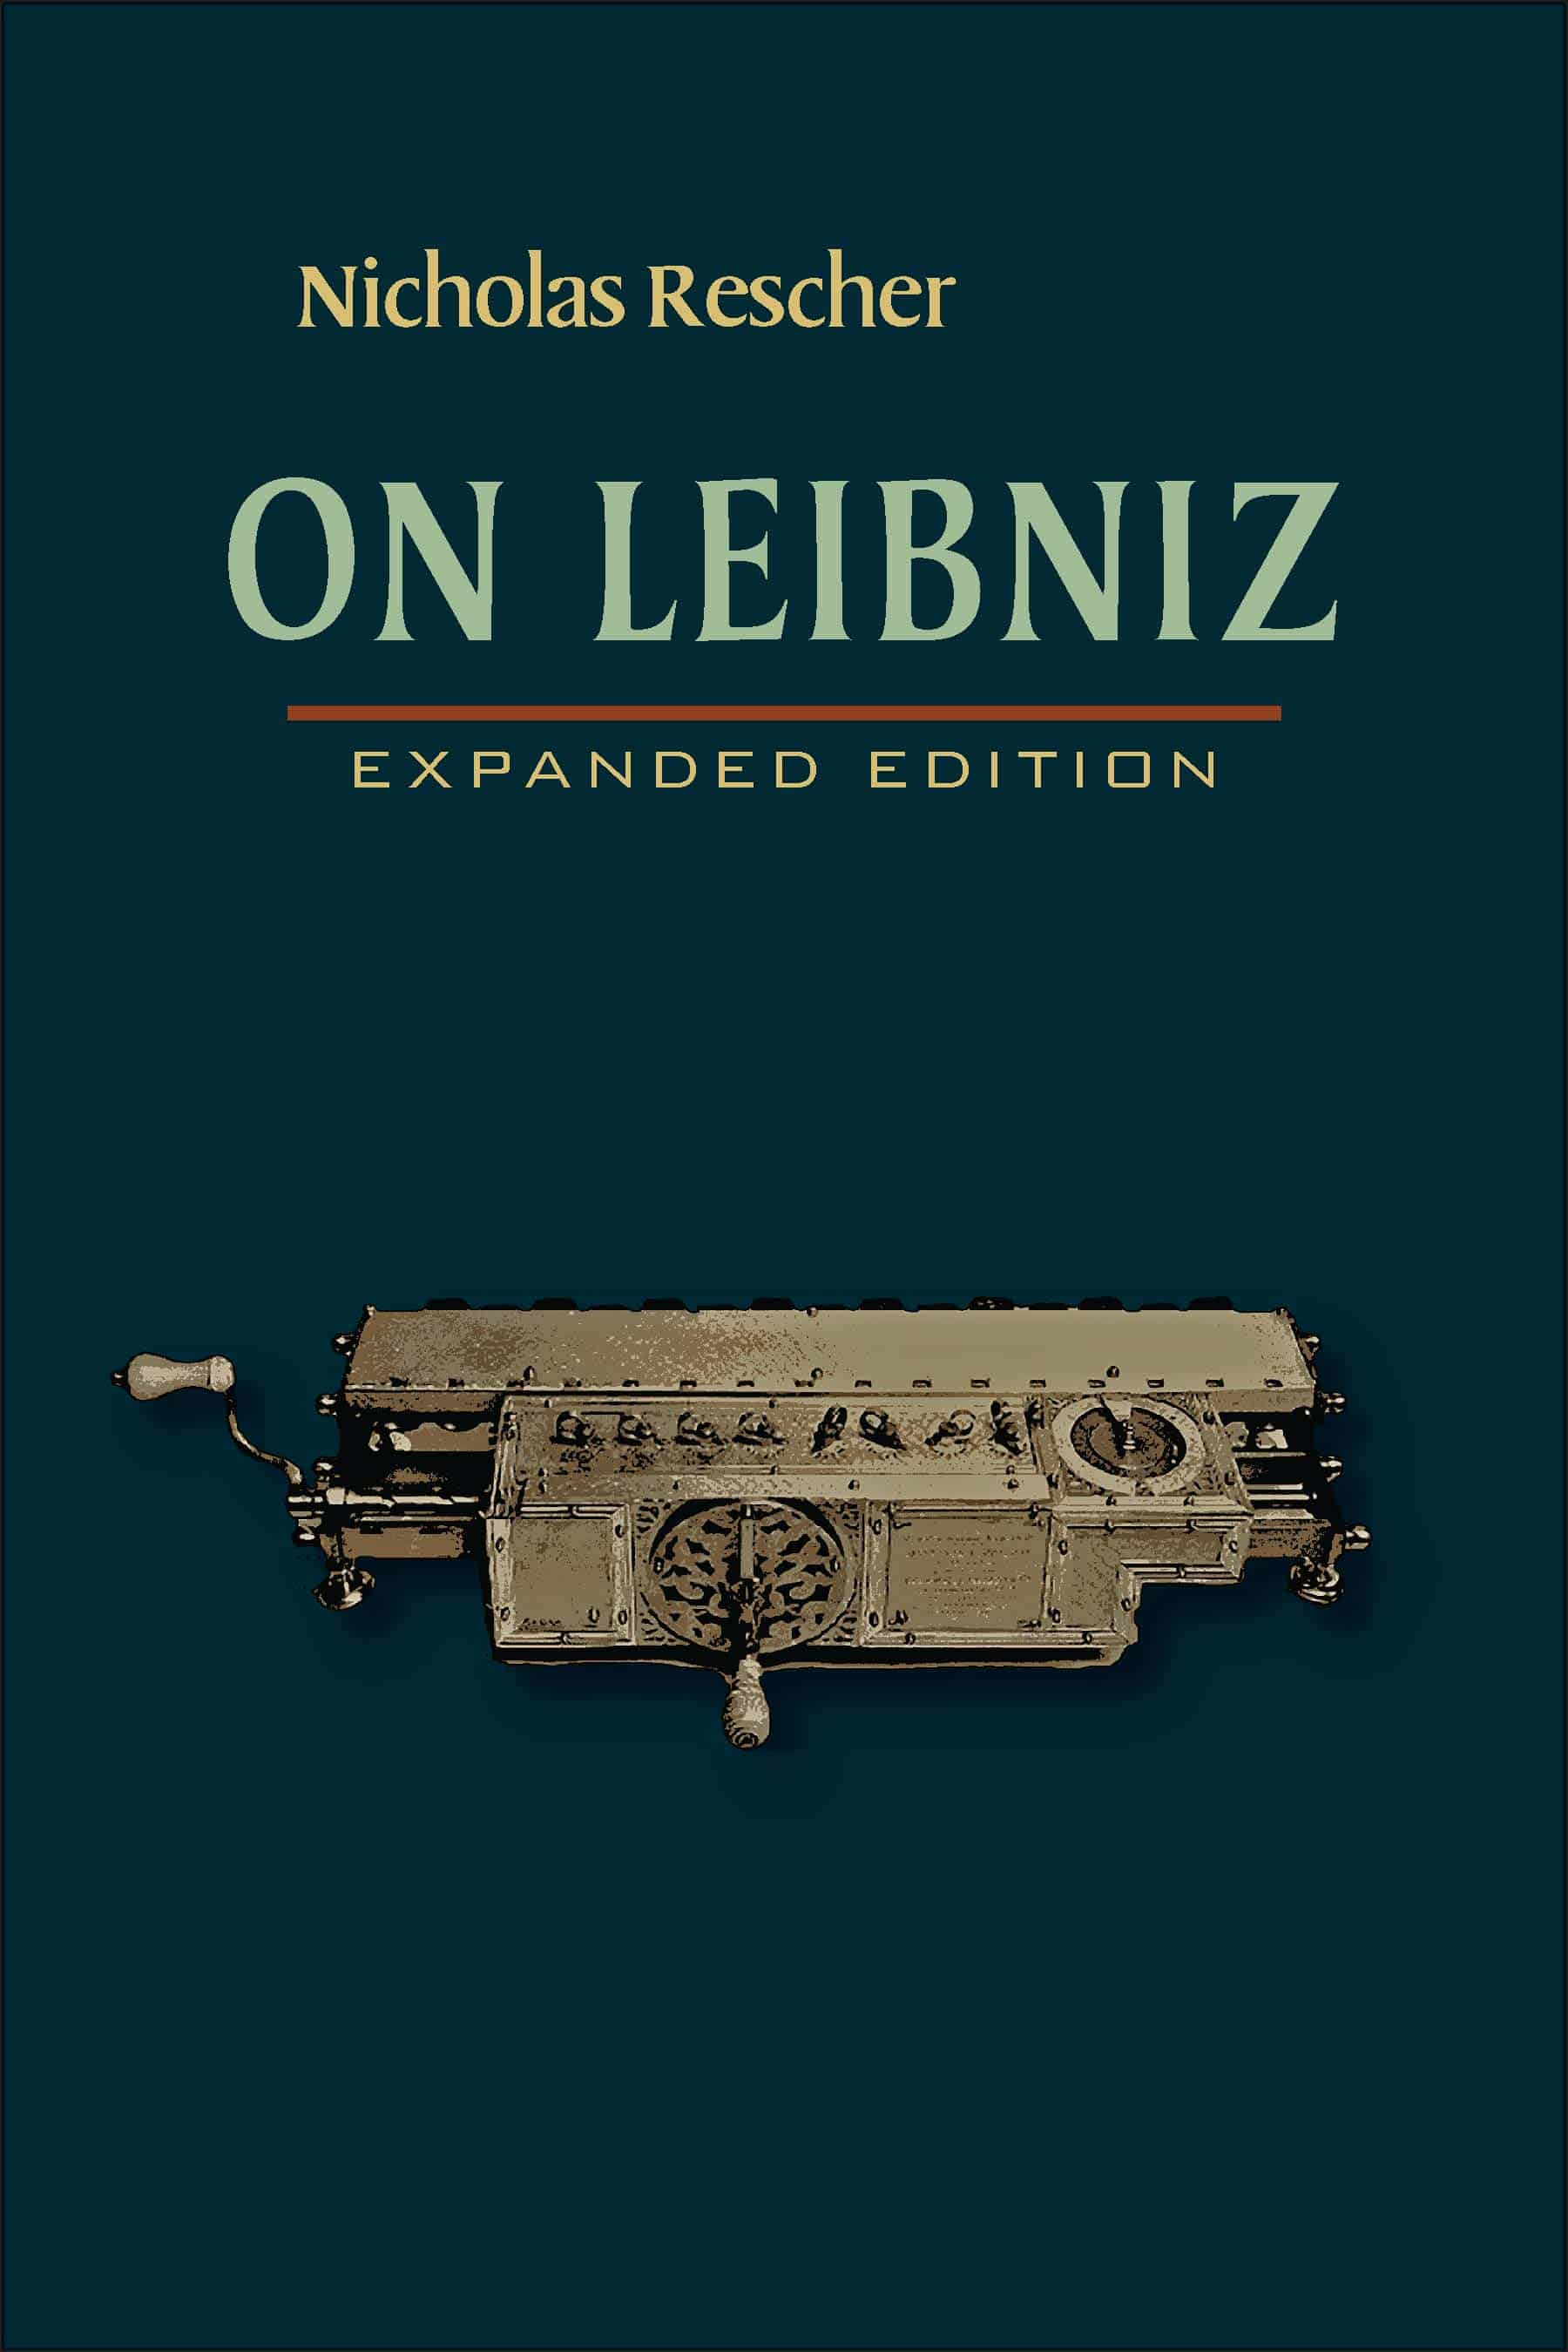 On Leibniz by Nicholas Rescher - On Leibniz